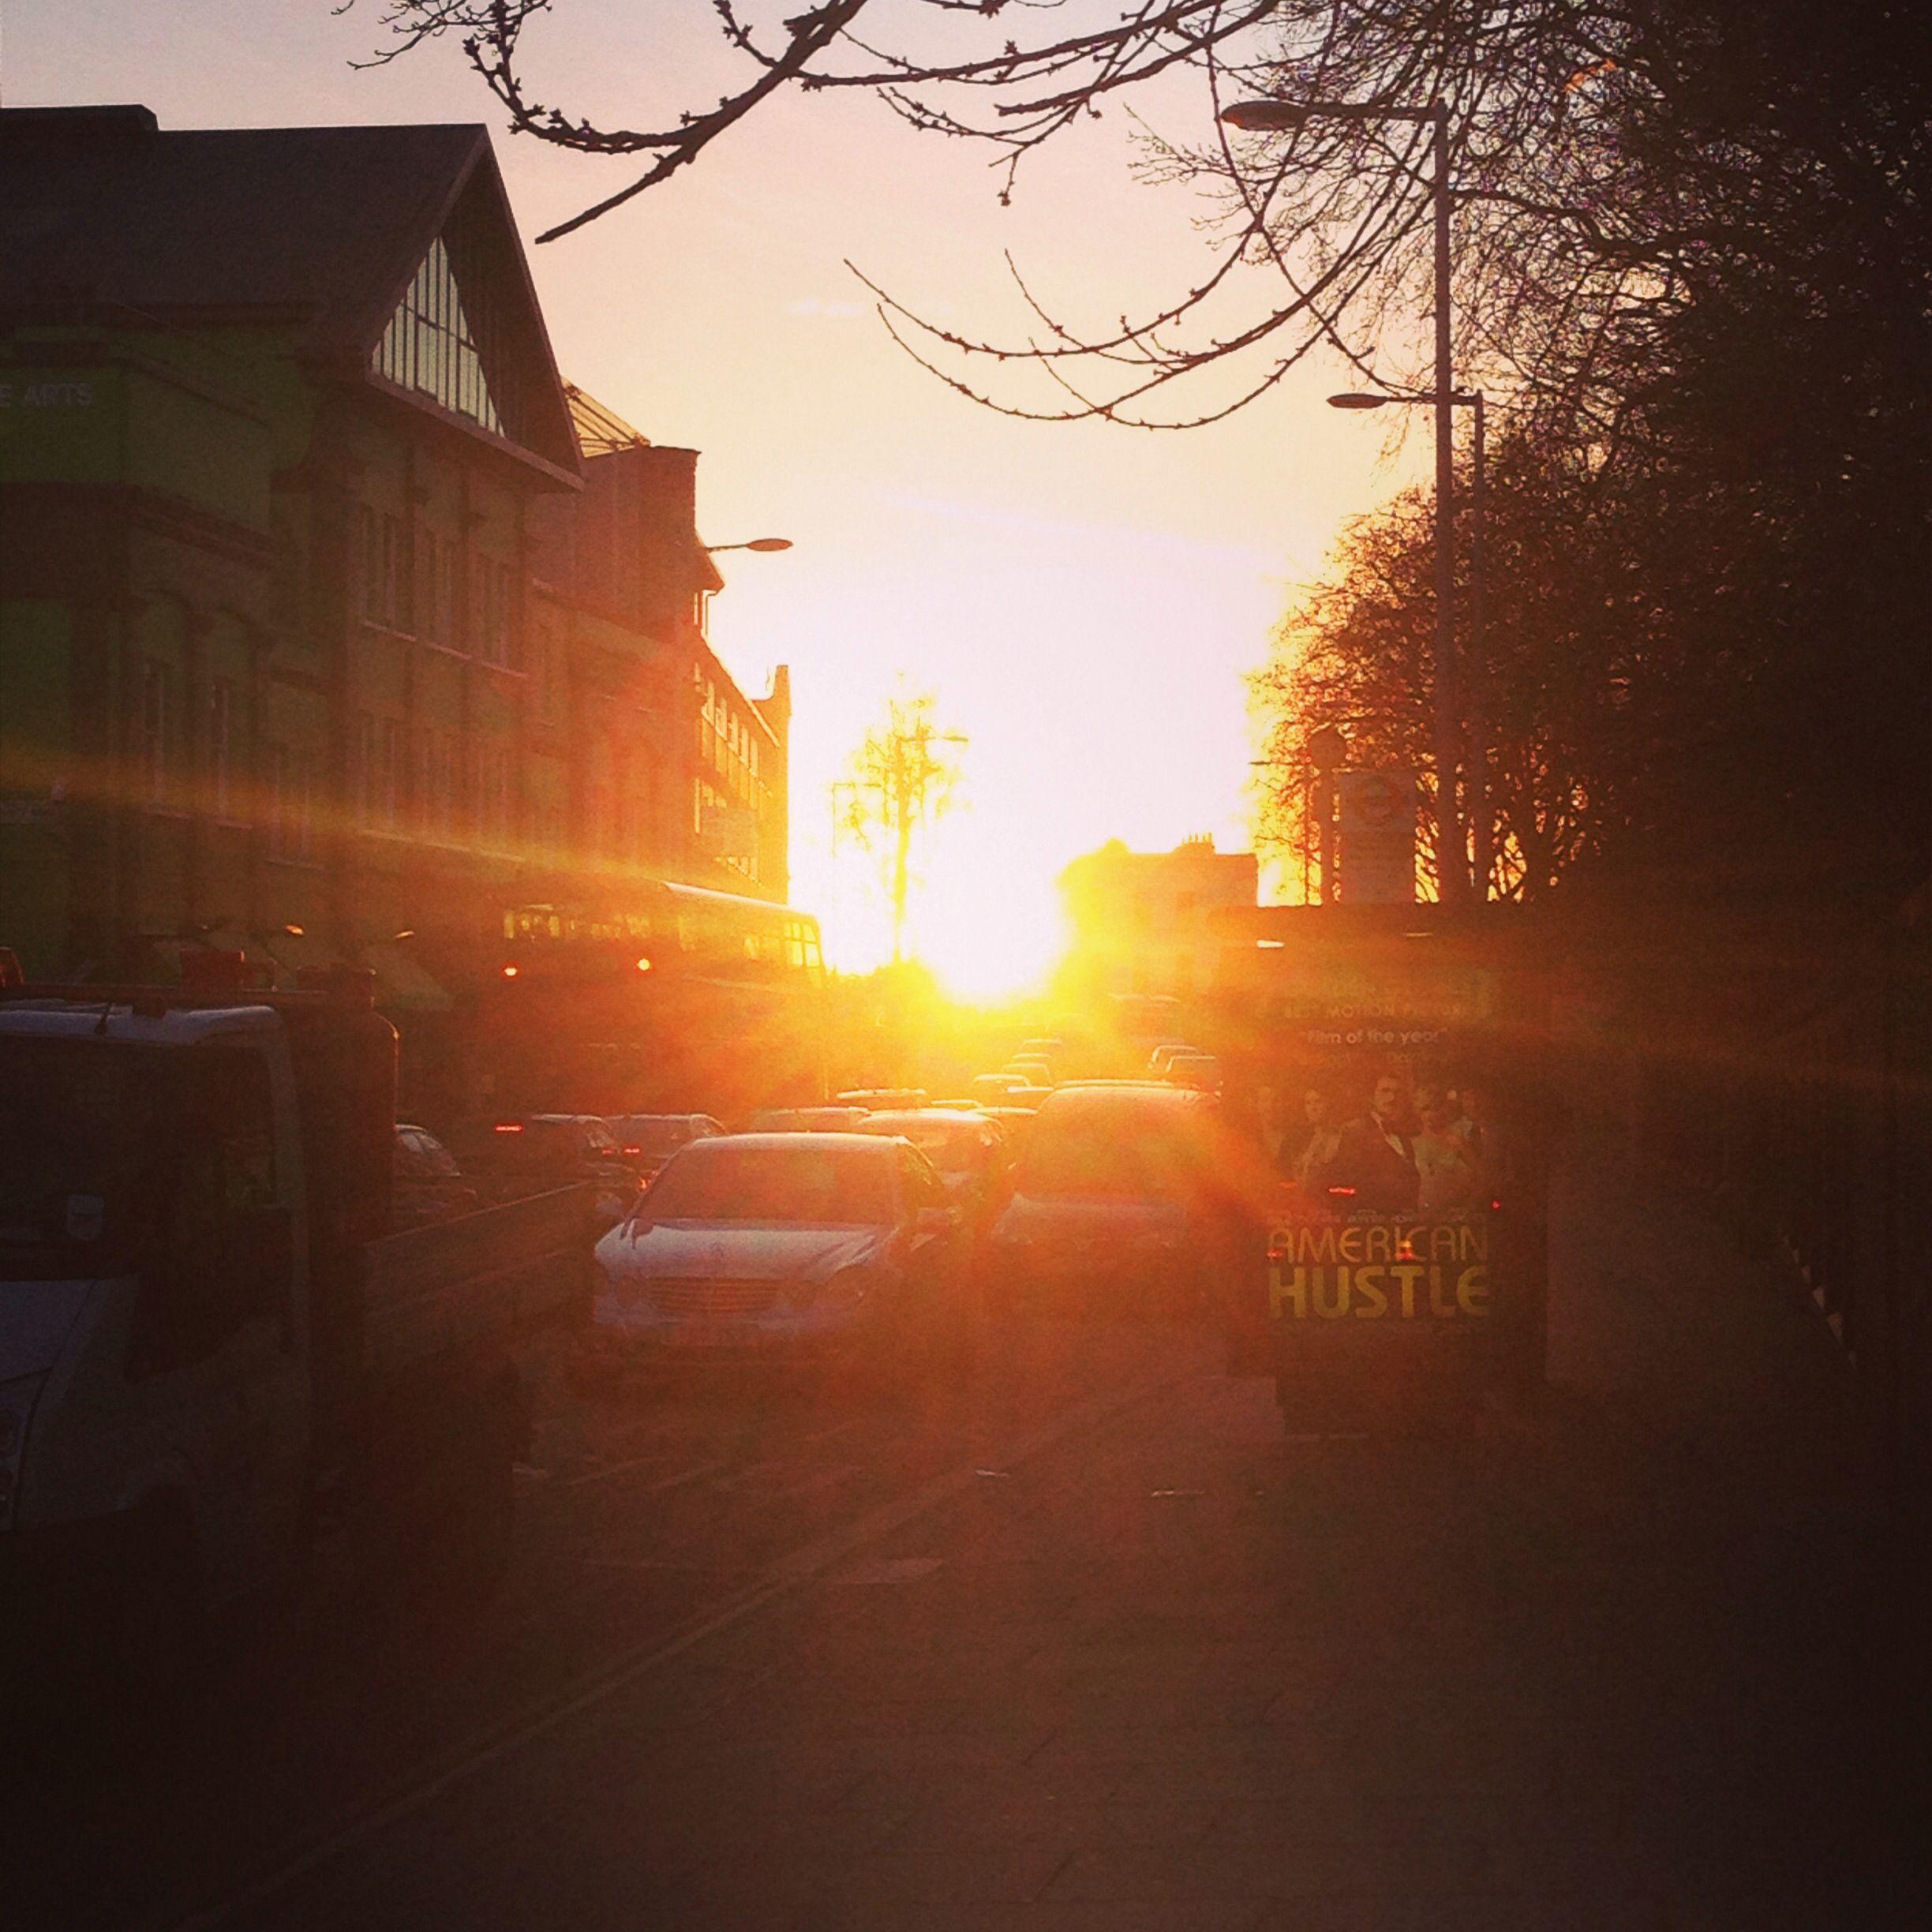 King's road, winter afternoon